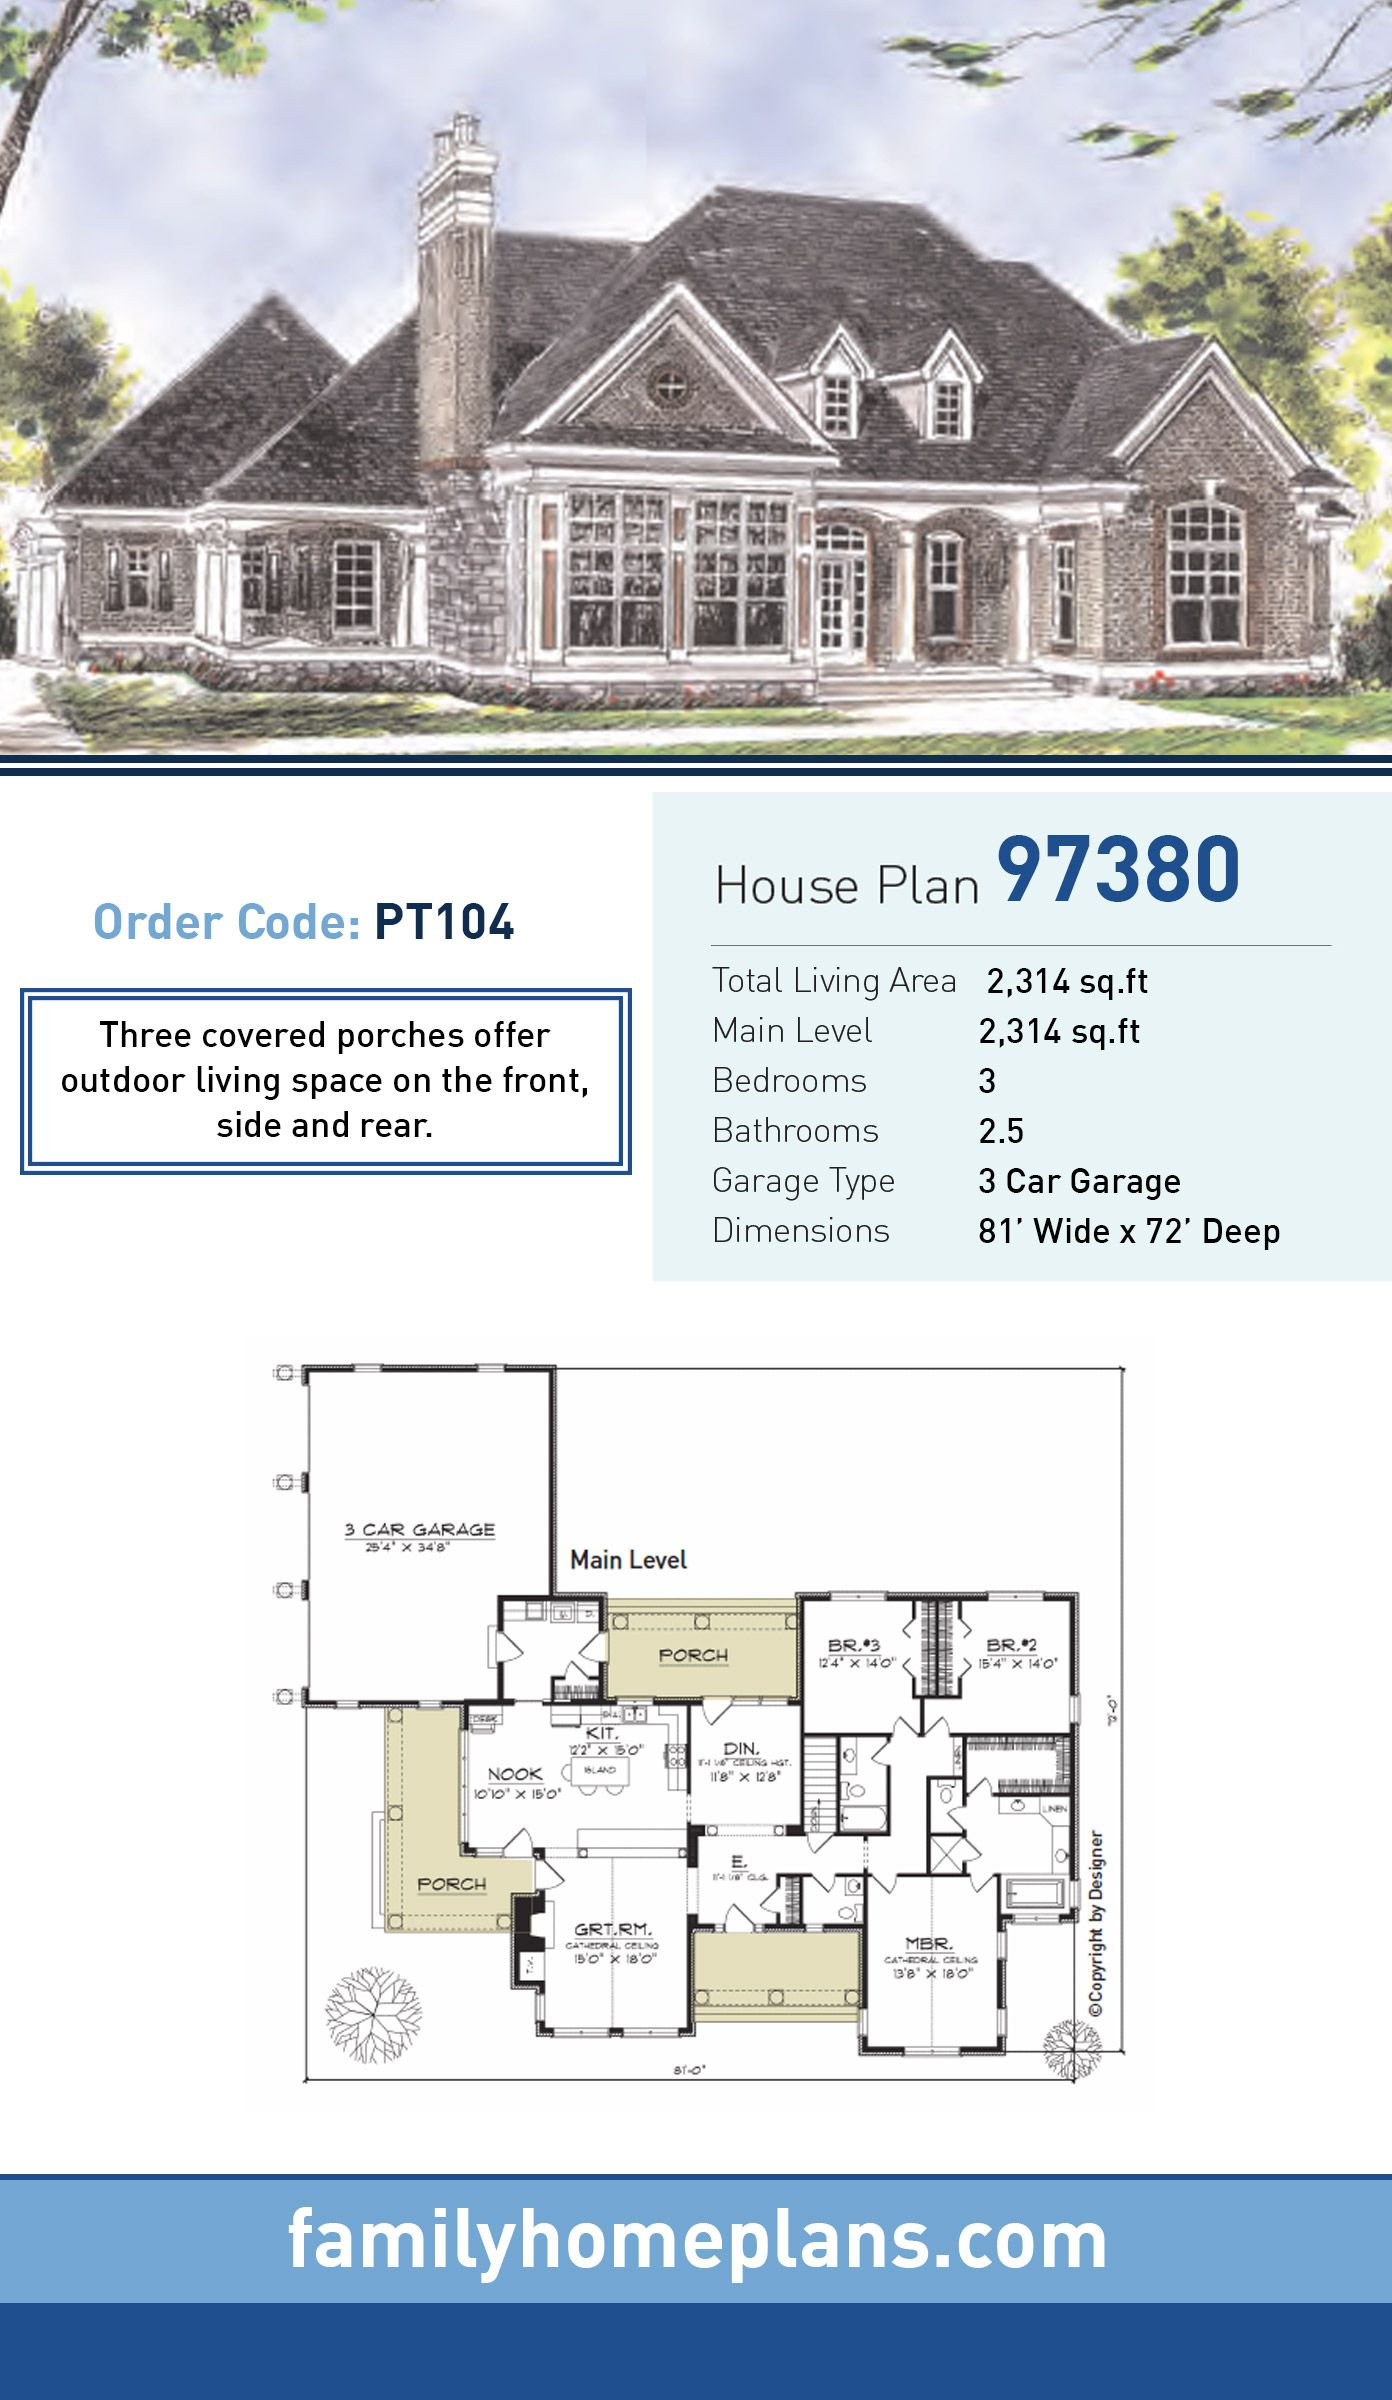 European Style House Plan 97380 with 3 Bed, 3 Bath, 3 Car ... on european duplex house plans, brick ranch style house plans, cottage style ranch house plans, european cottage home plans, european country house plans,